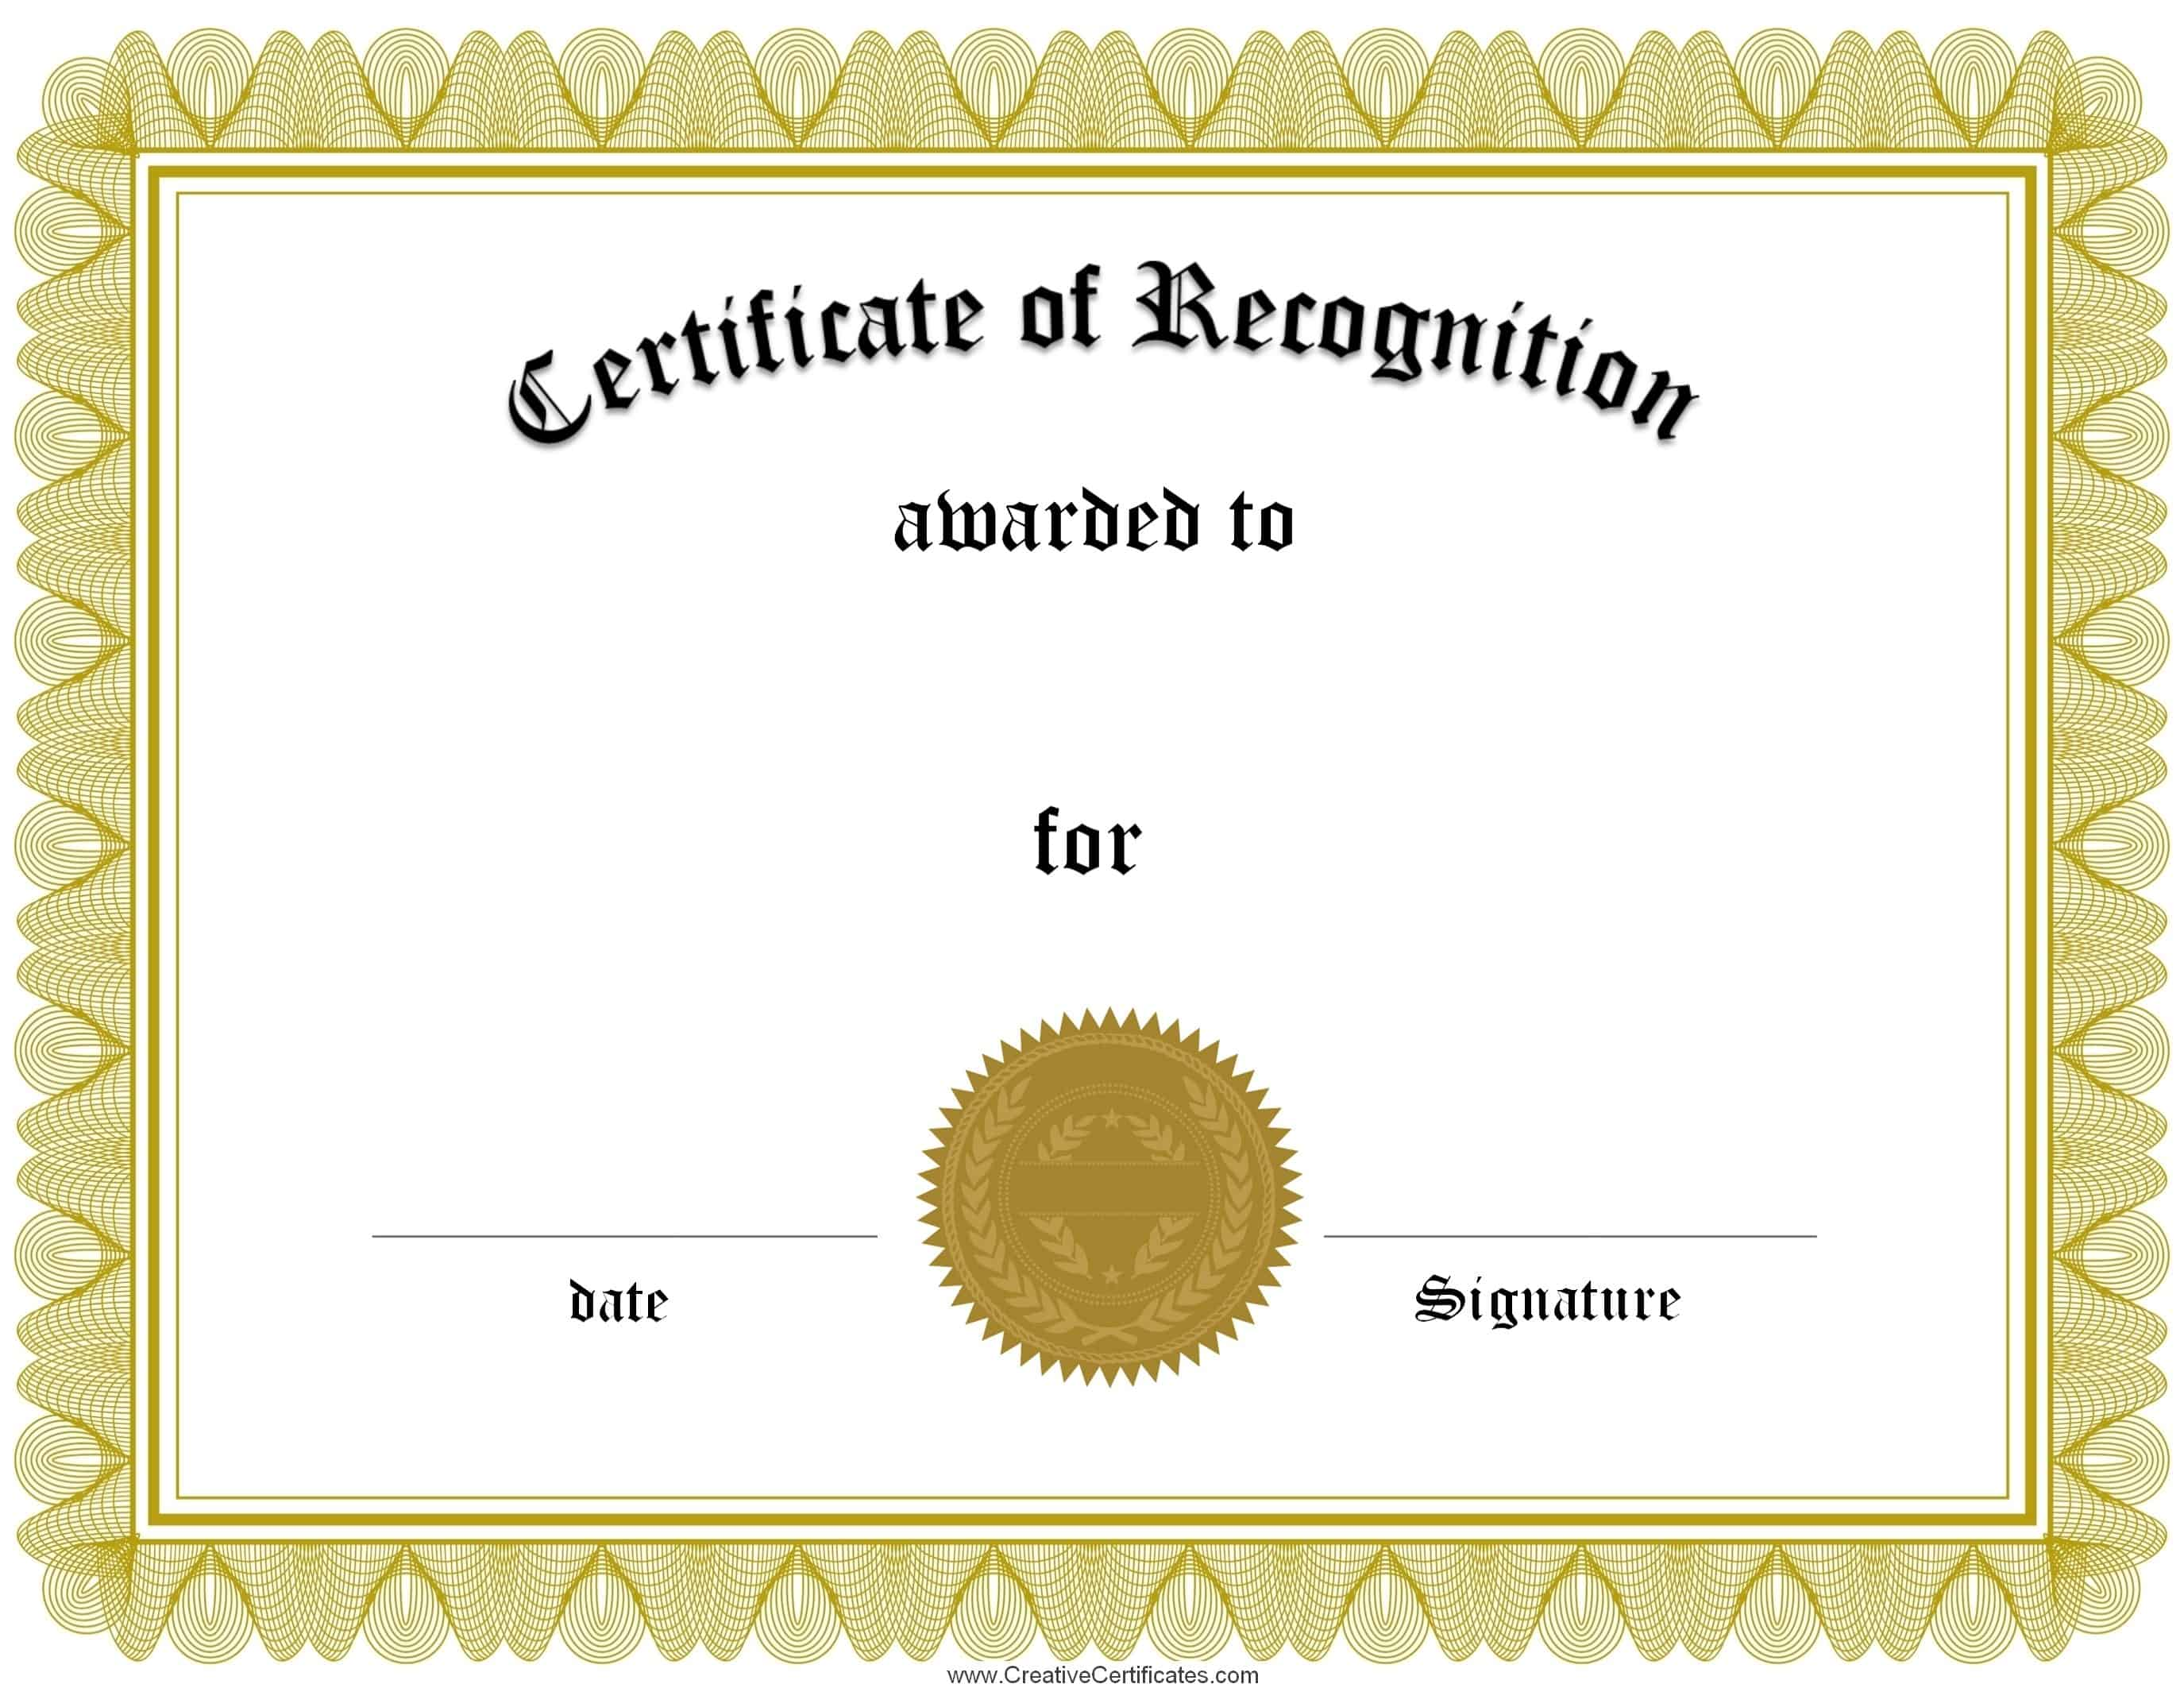 Free certificate of recognition template – Blank Award Templates